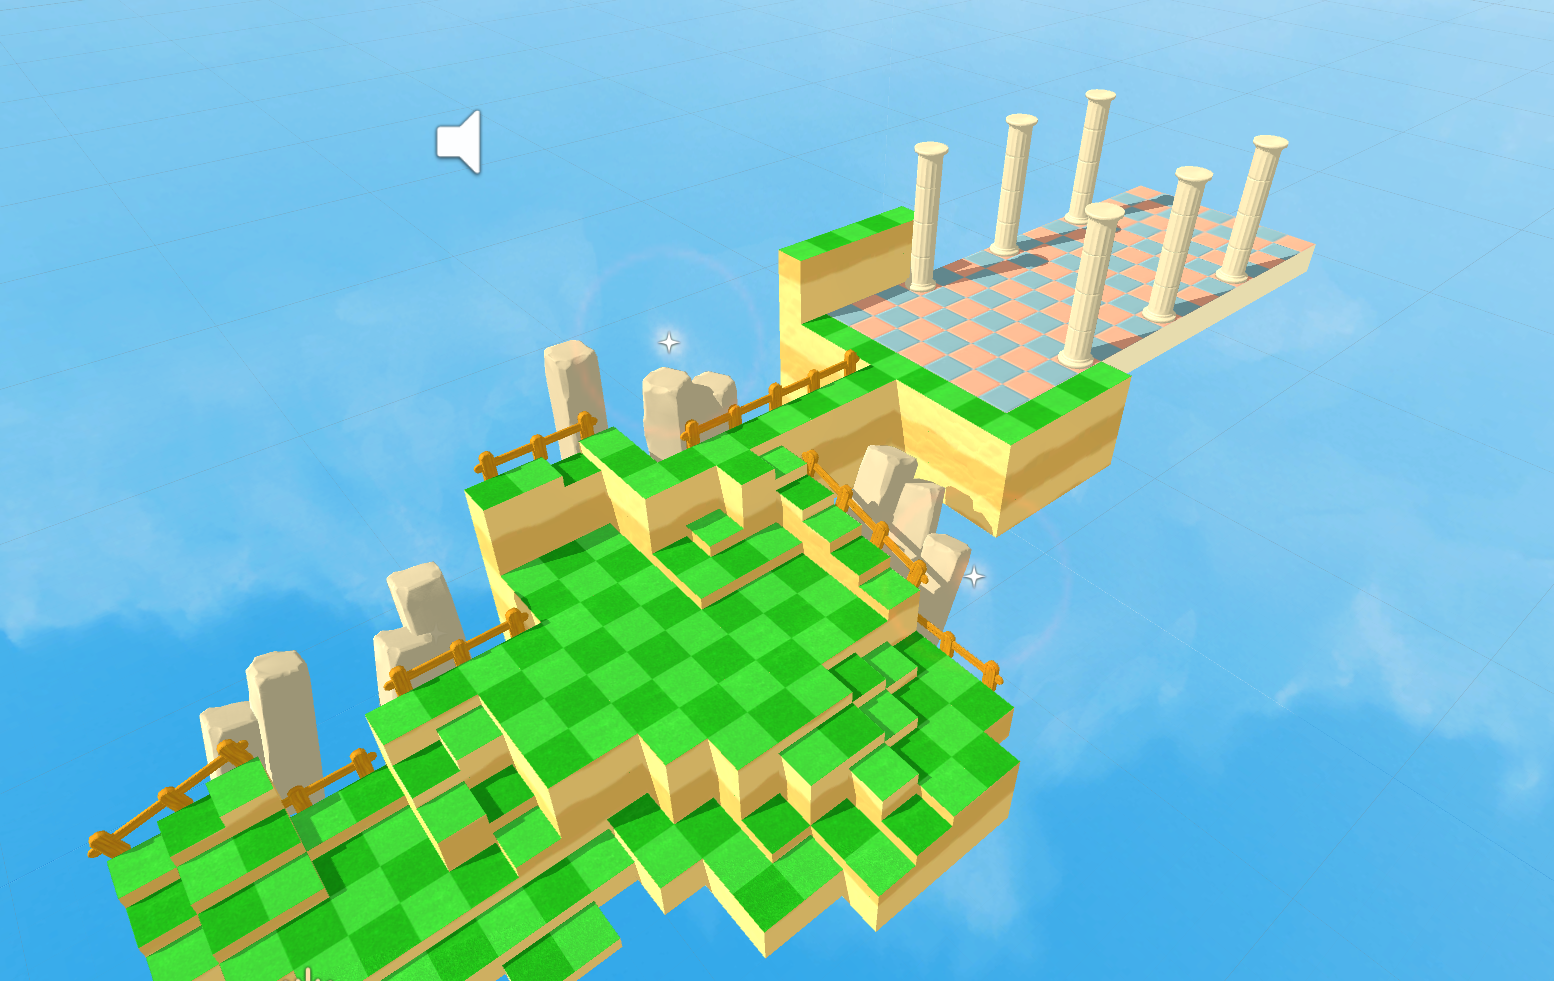 Copy of Mobile strategy game Unity3D scene